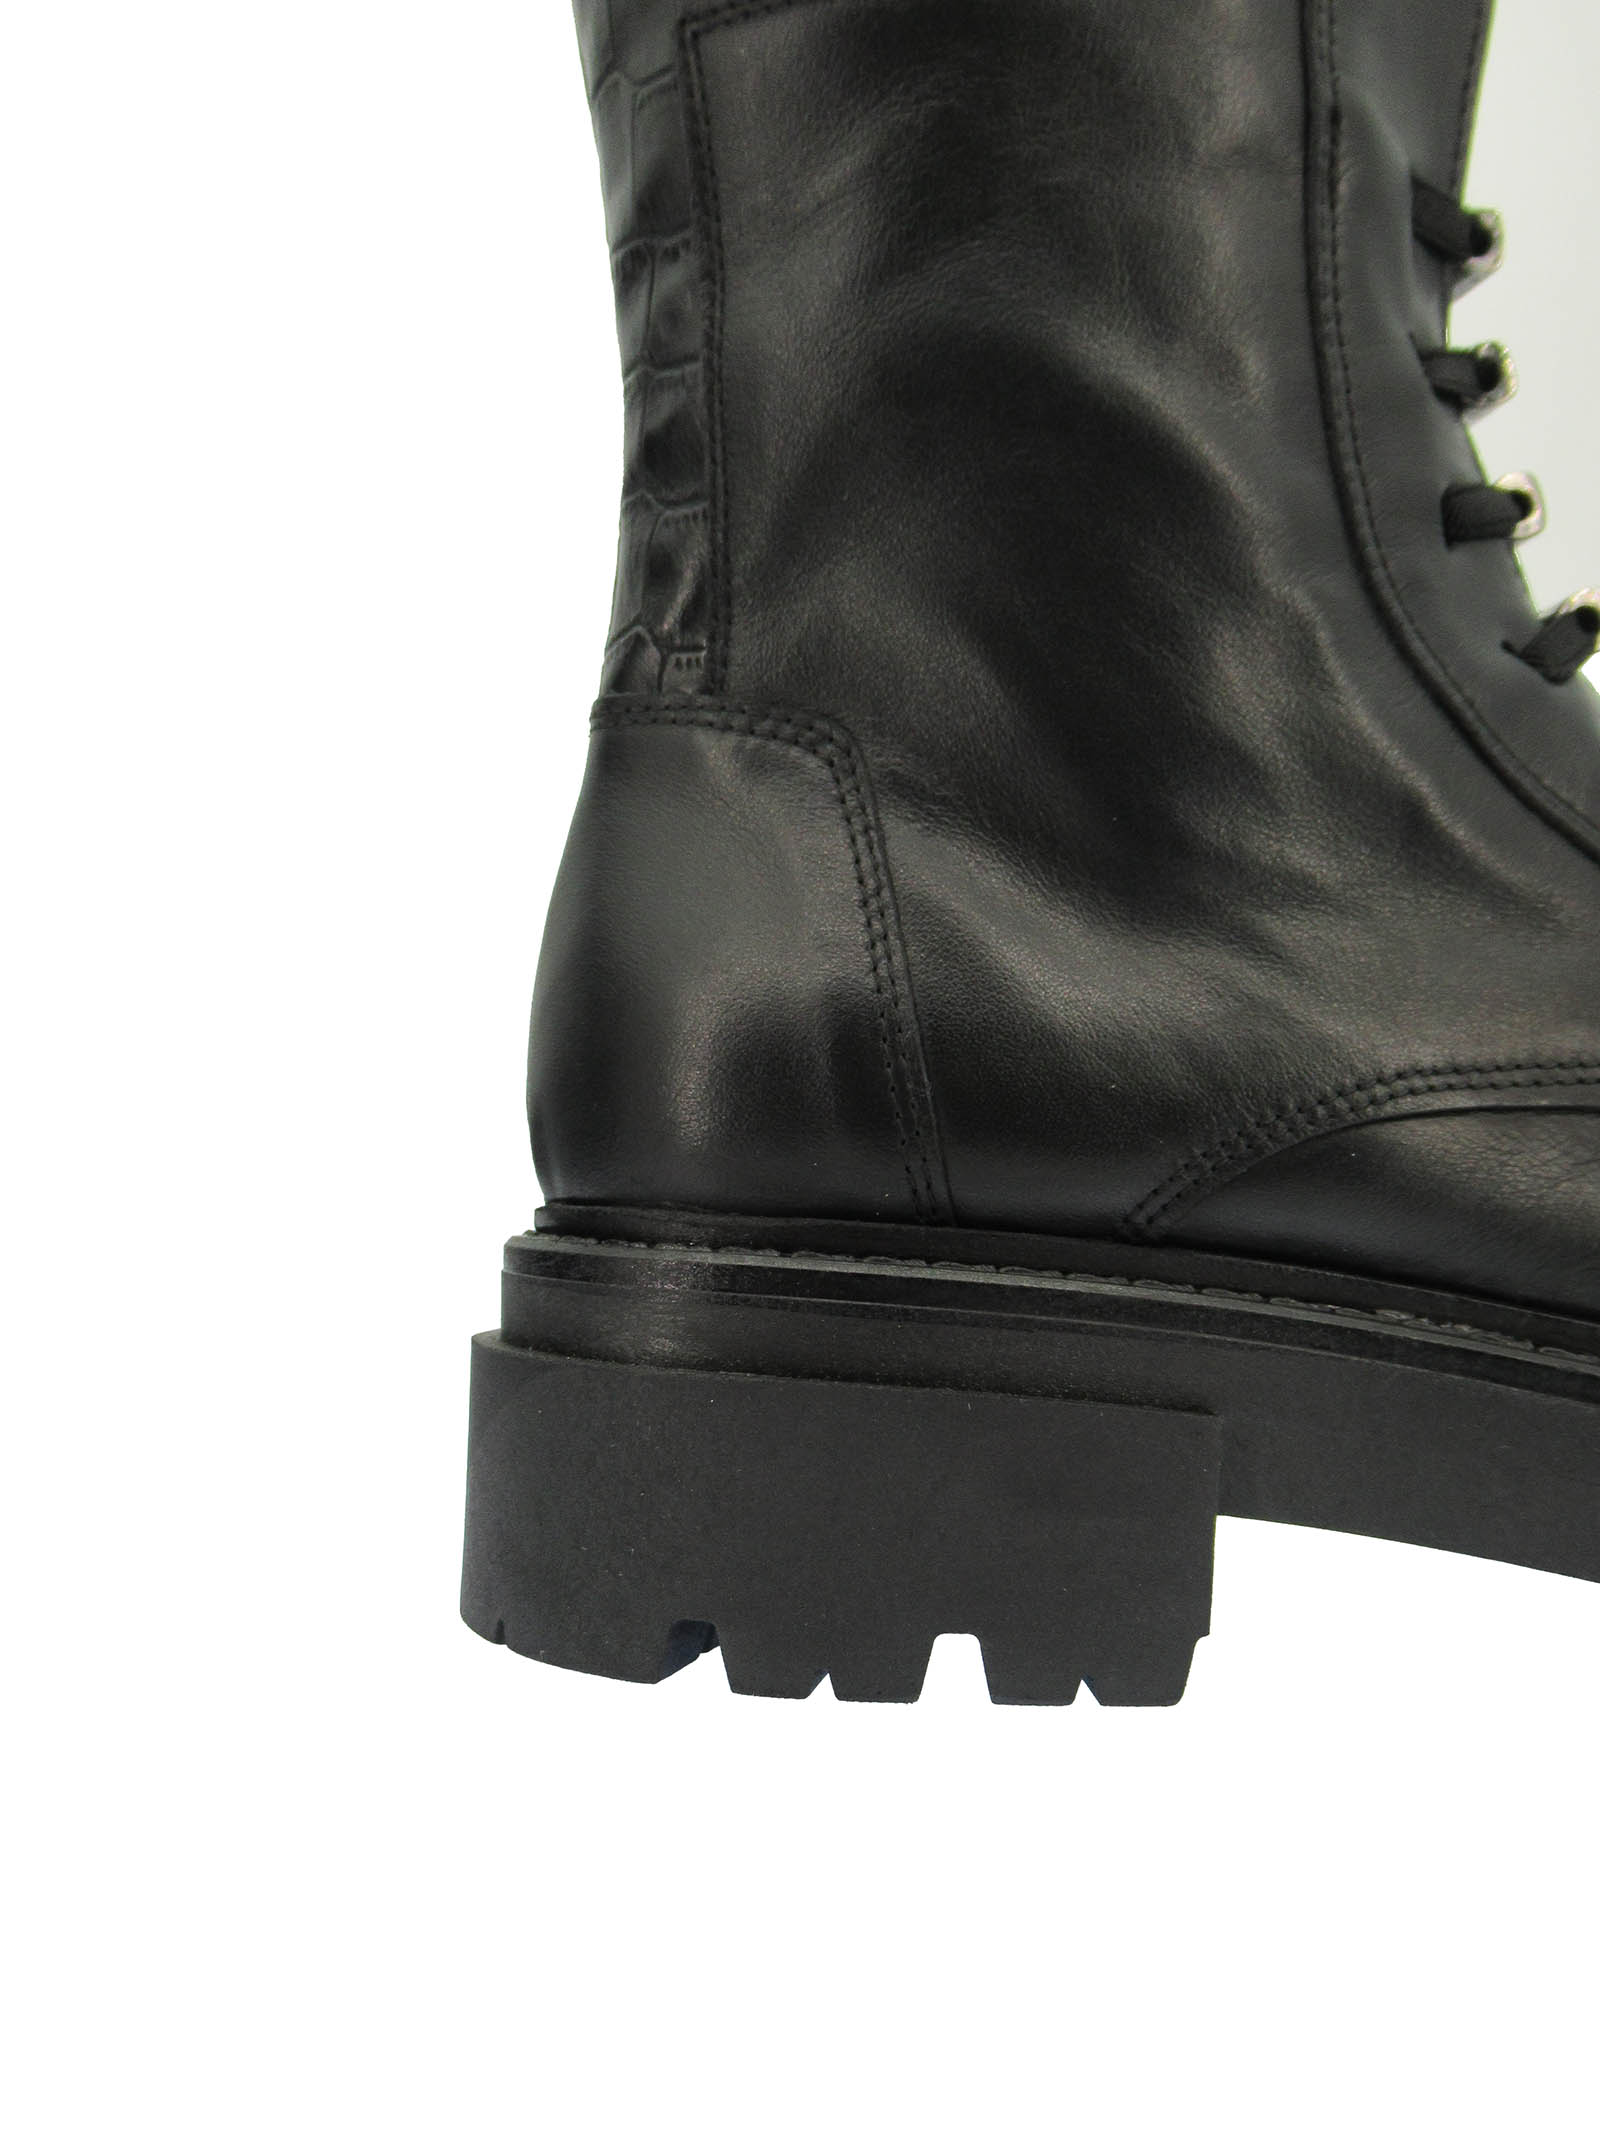 Women's Shoes Ankle Boots in Black Leather with Tank Sole and Elastic Laces Exe   Ankle Boots   N8100731001